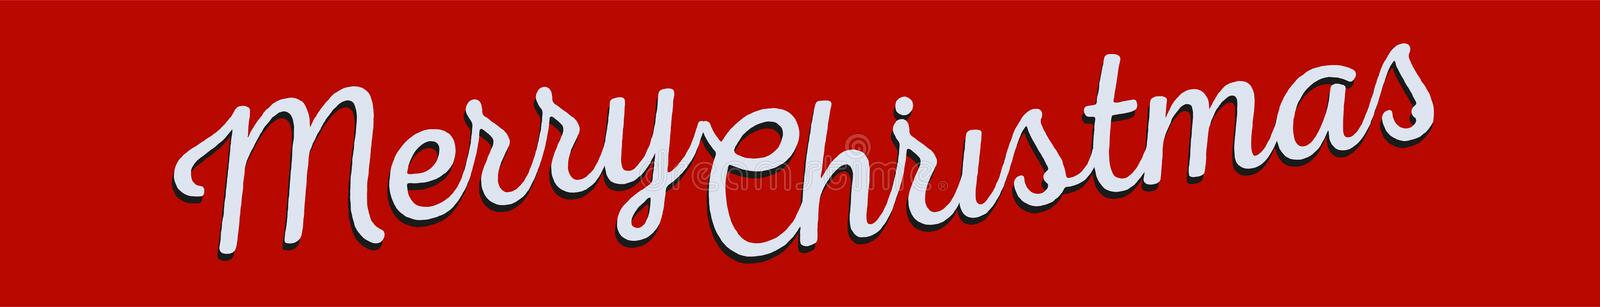 Merry Christmas greeting banner. White lettering on red background, retro design. Vectors. royalty free illustration